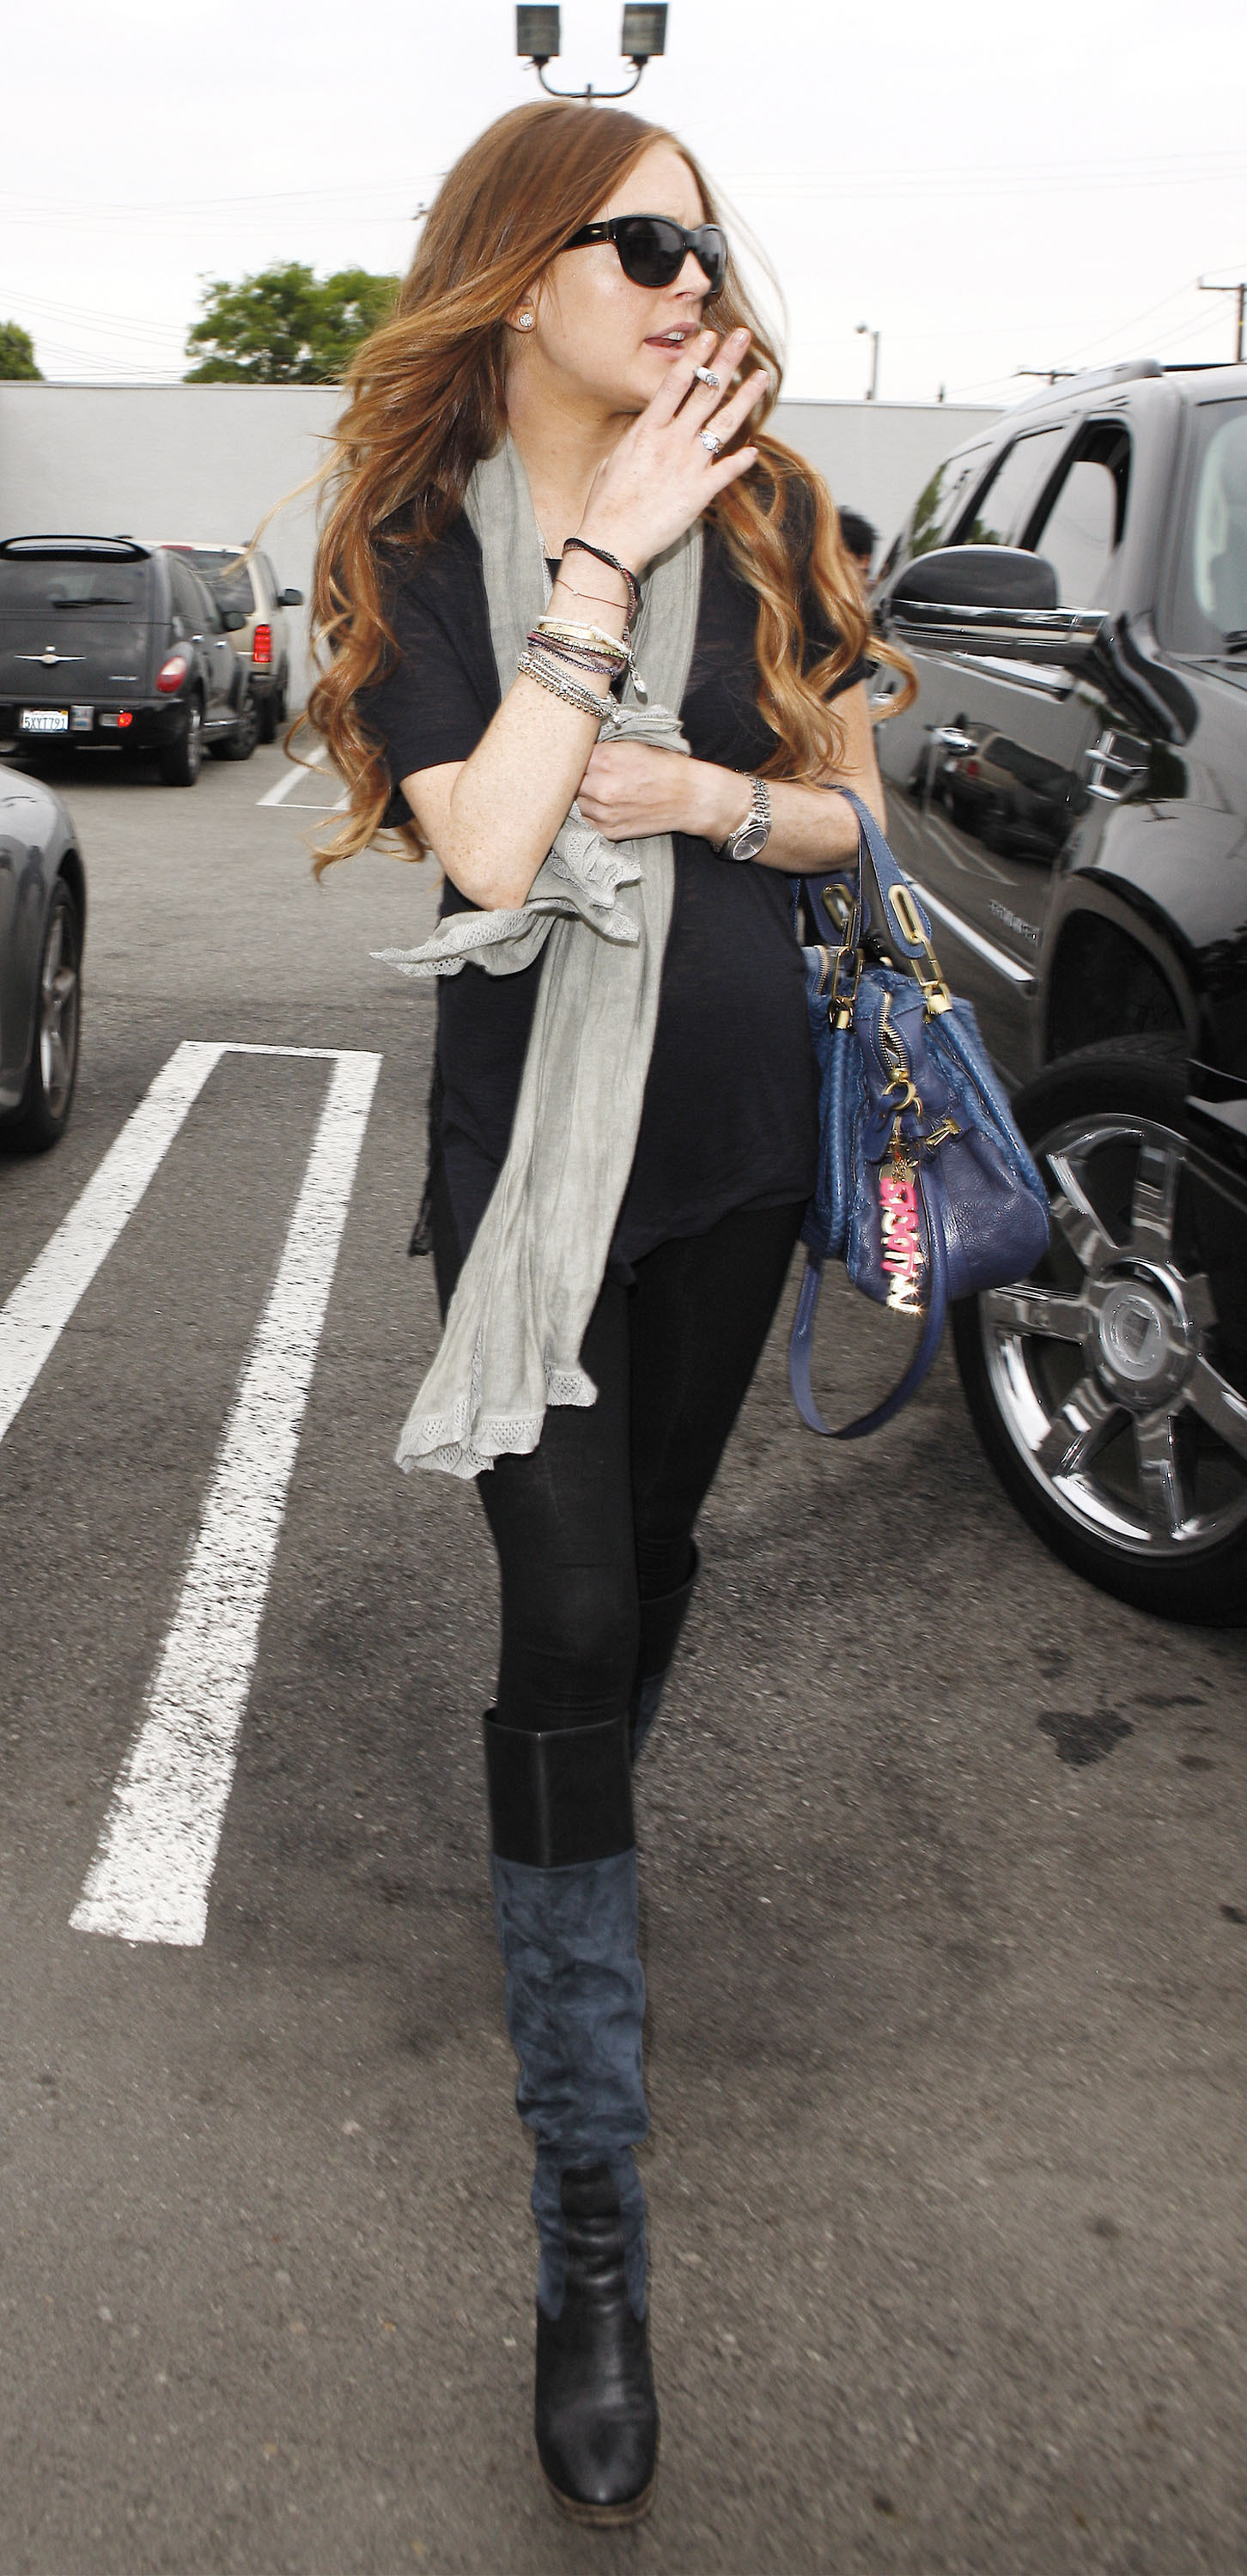 Lindsay Lohan leaves Andy Lecompte Salon in West Hollywood smoking a cigarette. Los Angeles, California - 11.06.09  Featuring: Lindsay Lohan Where: United States When: 11 Jun 2009 Credit: WENN